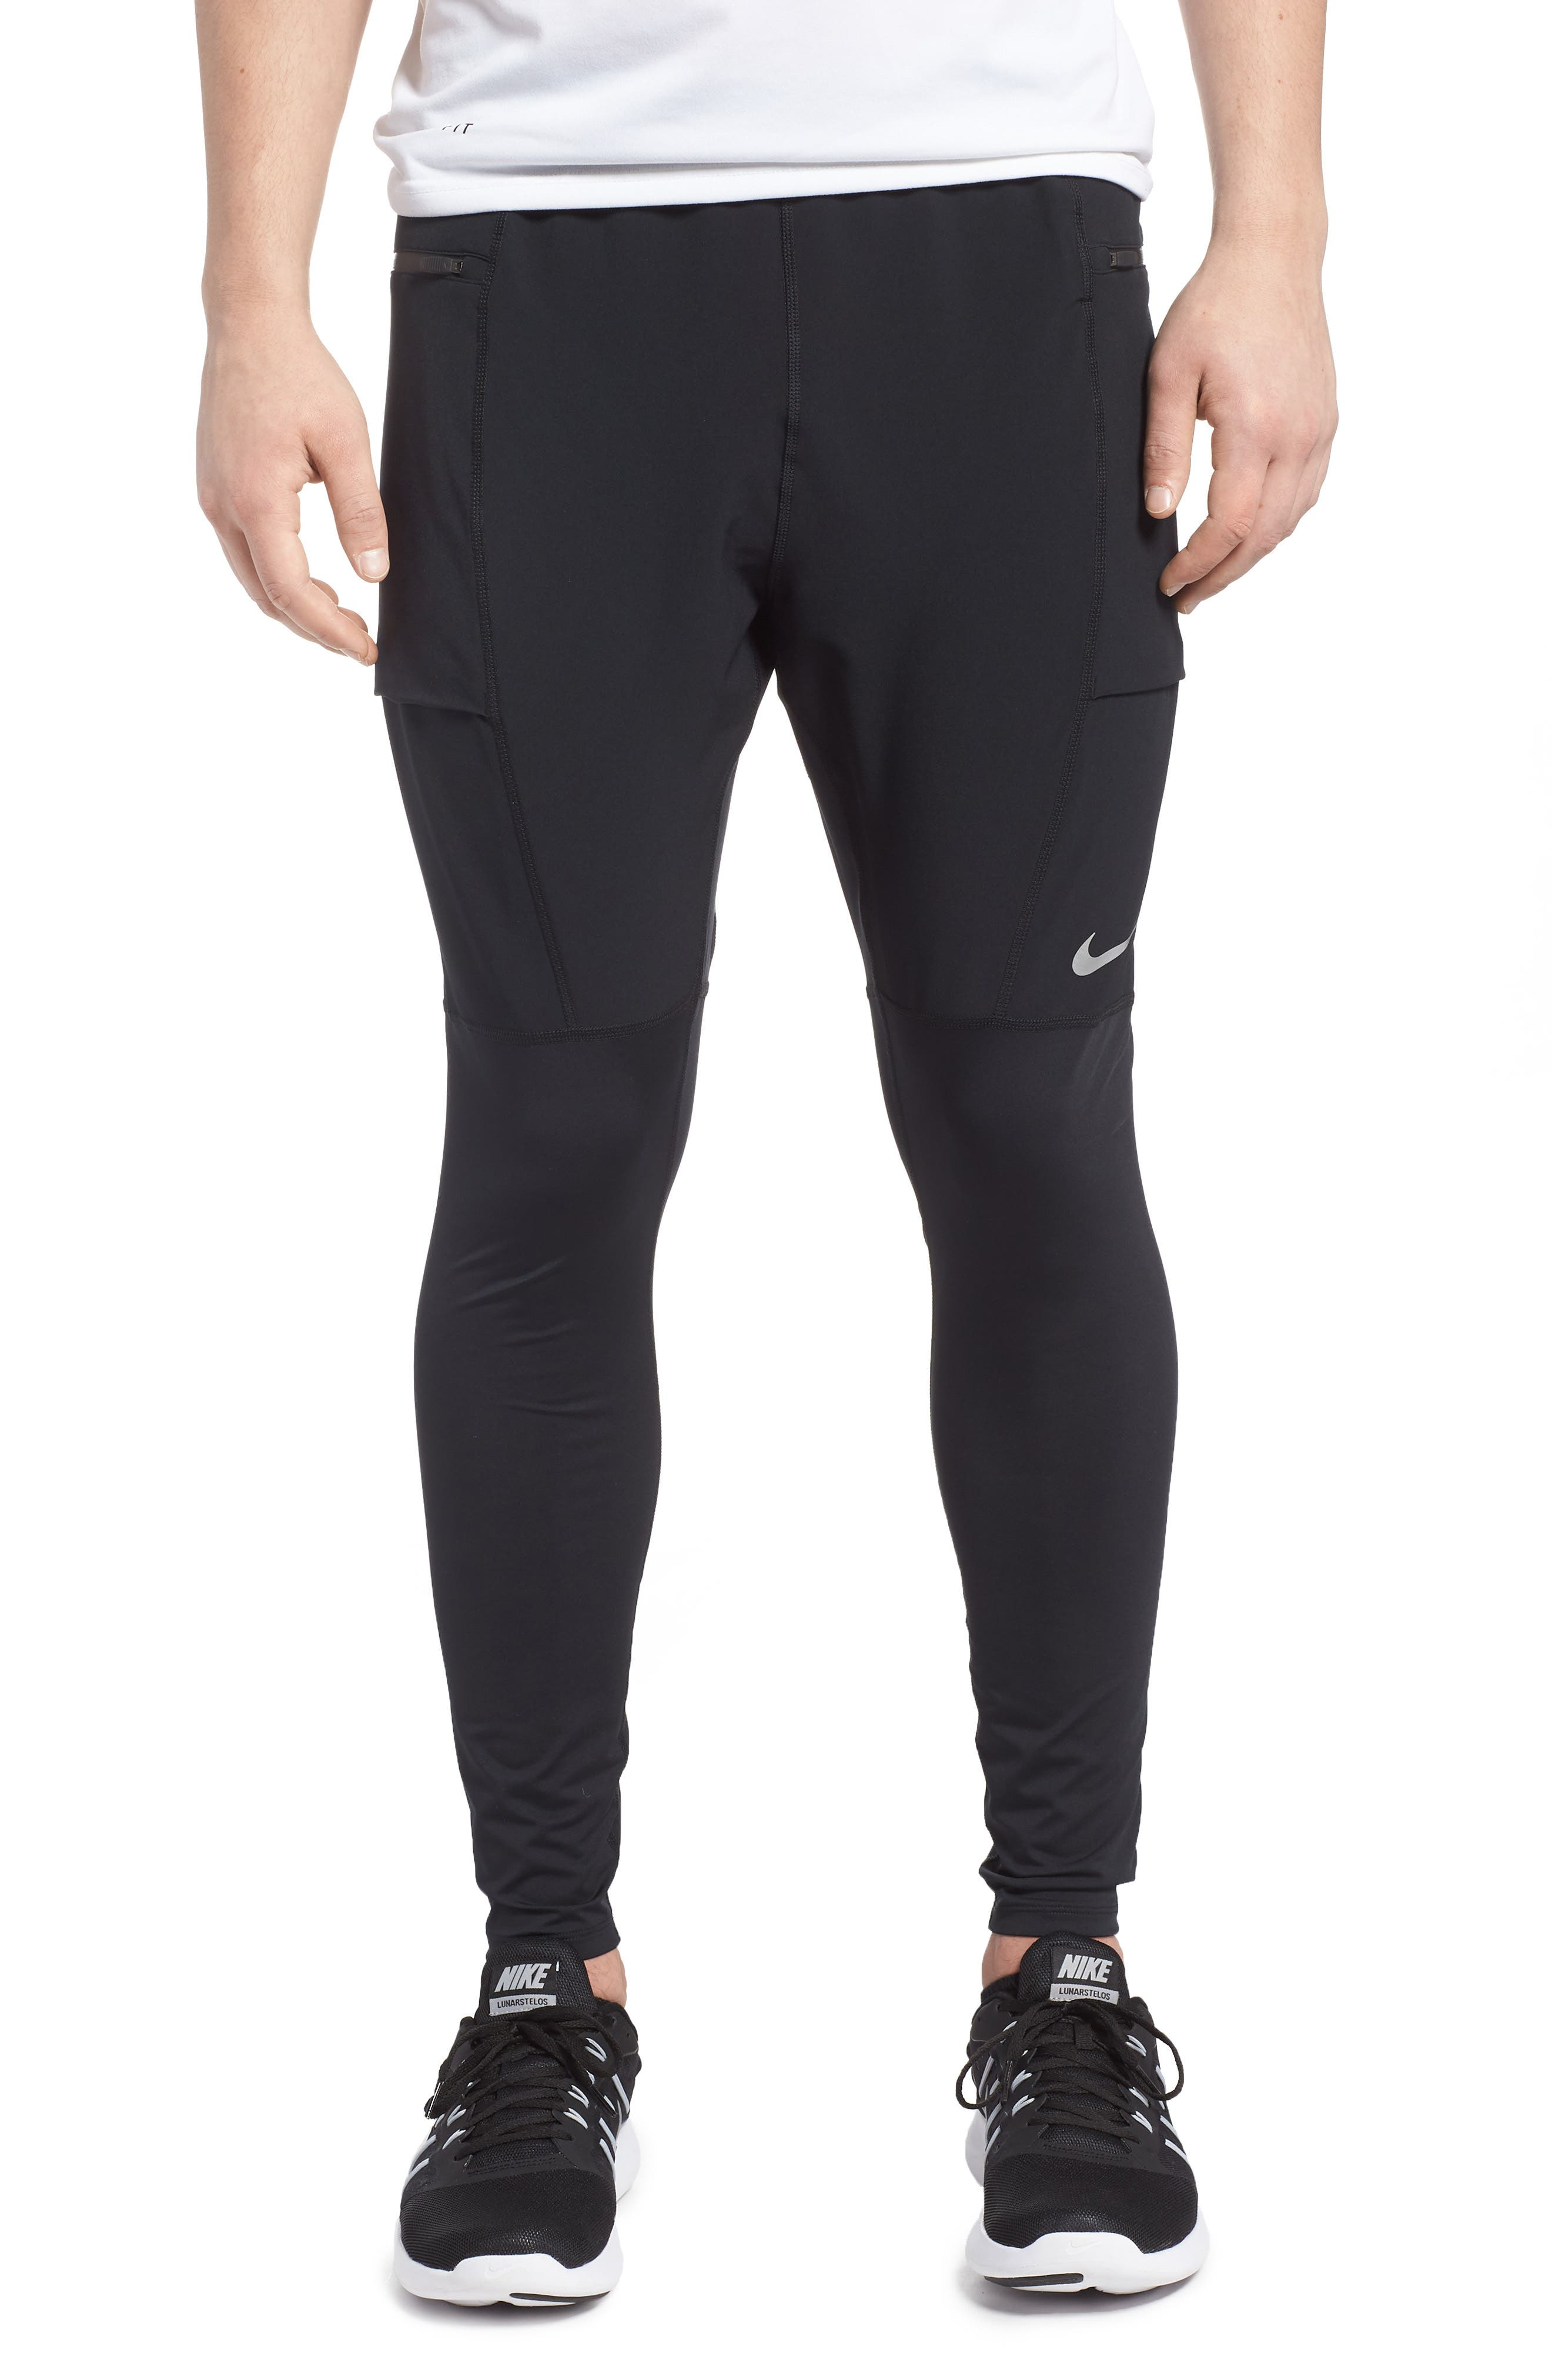 Utility Running Pants,                         Main,                         color, Black